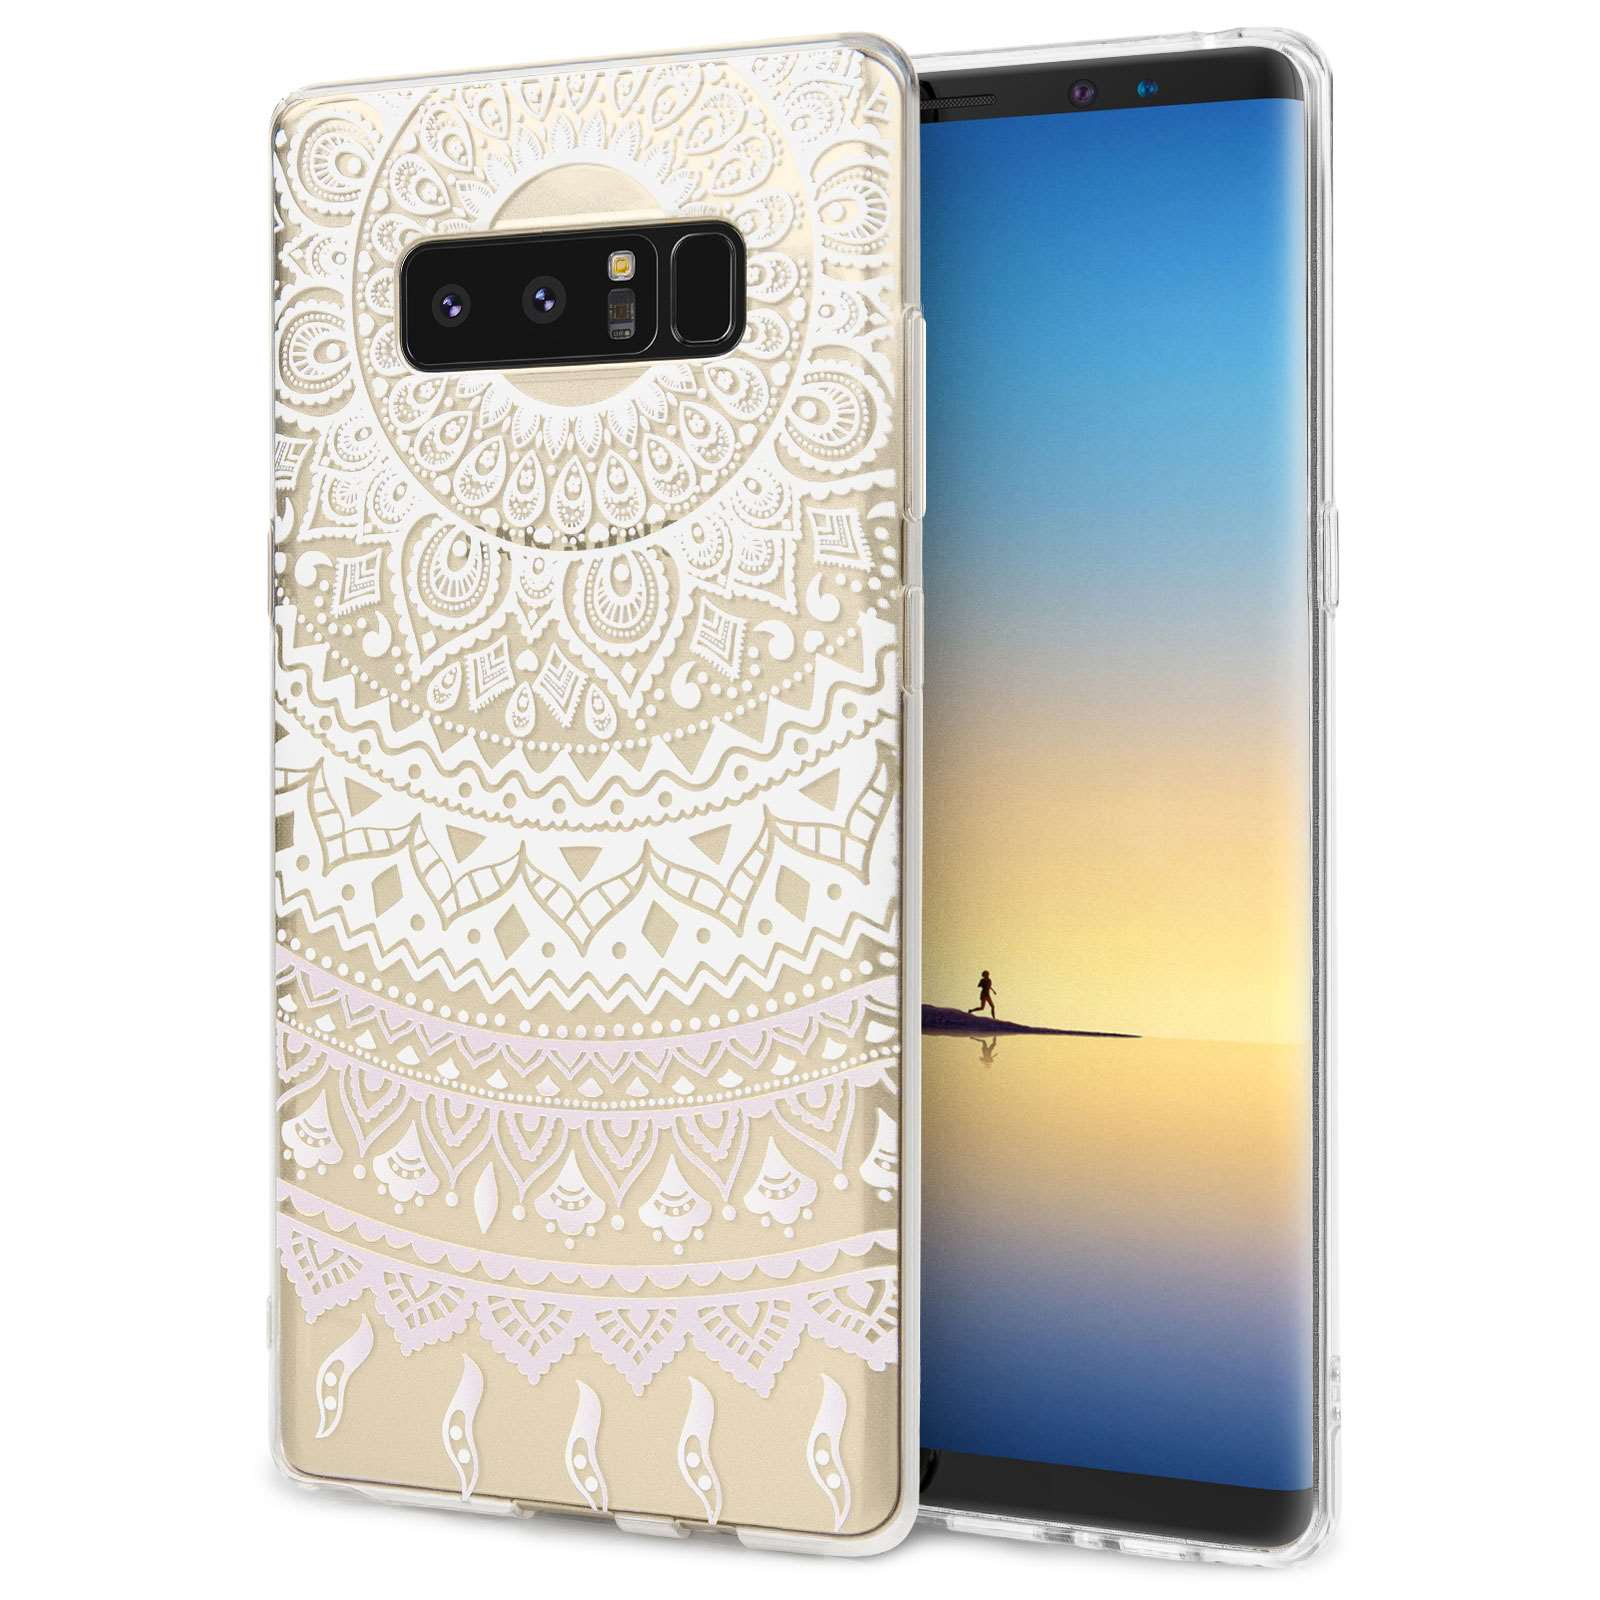 Centopi Θήκη Σιλικόνης Samsung Galaxy Note 8 - Mandala Pattern (CEN-SAM-117)